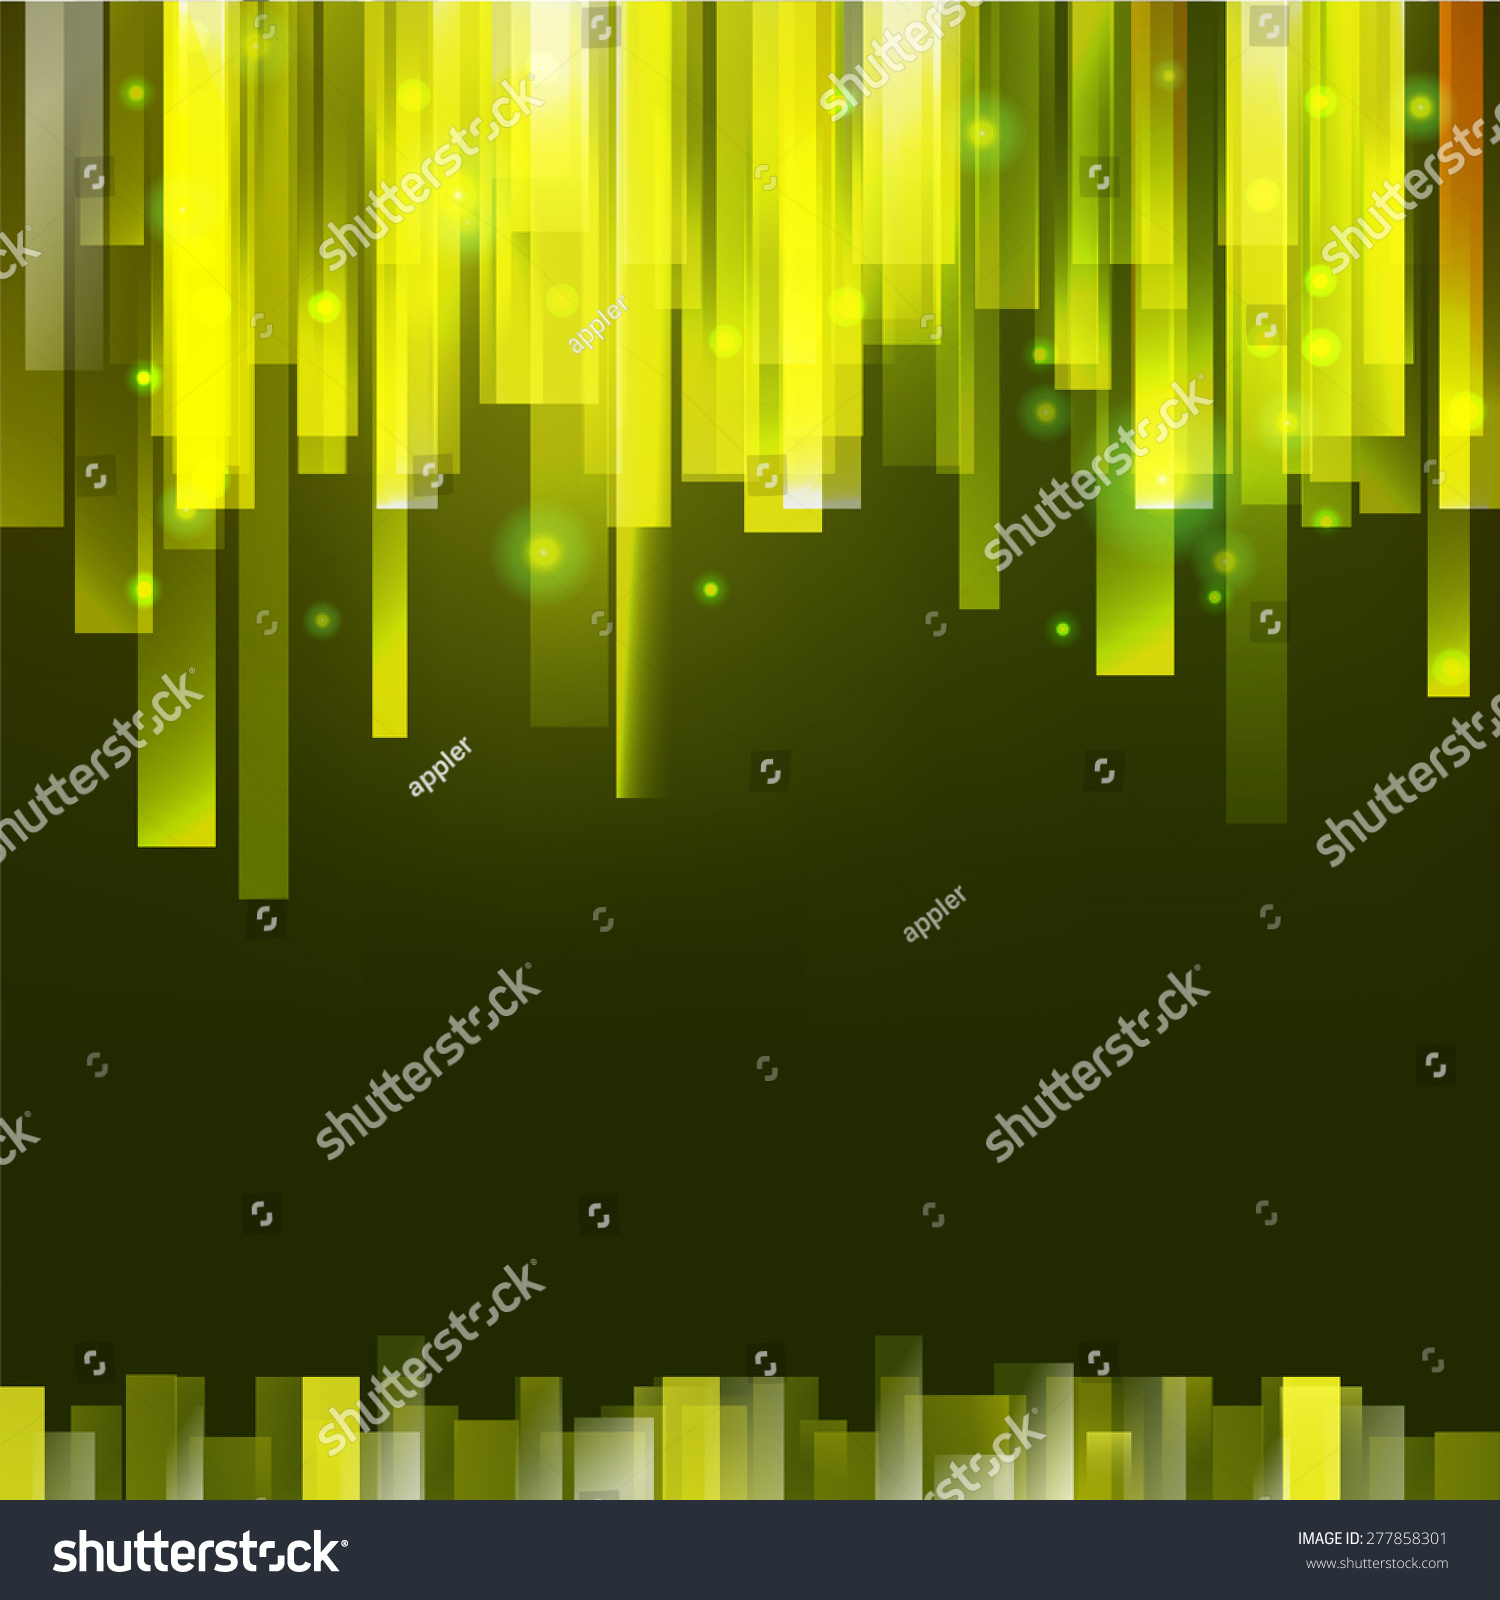 Straight Green Vertical Lines Abstract Vector Background